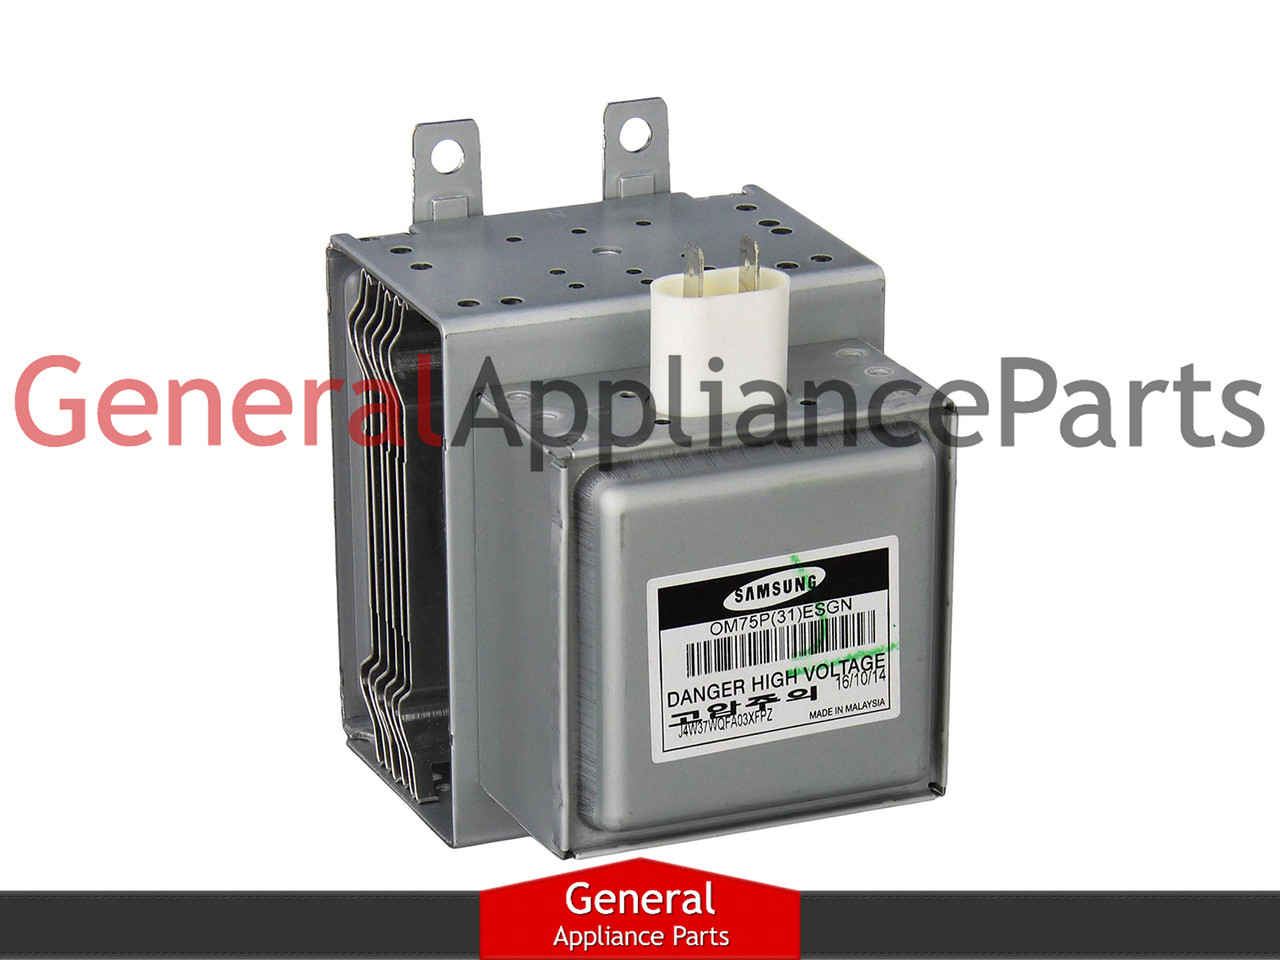 general appliance parts